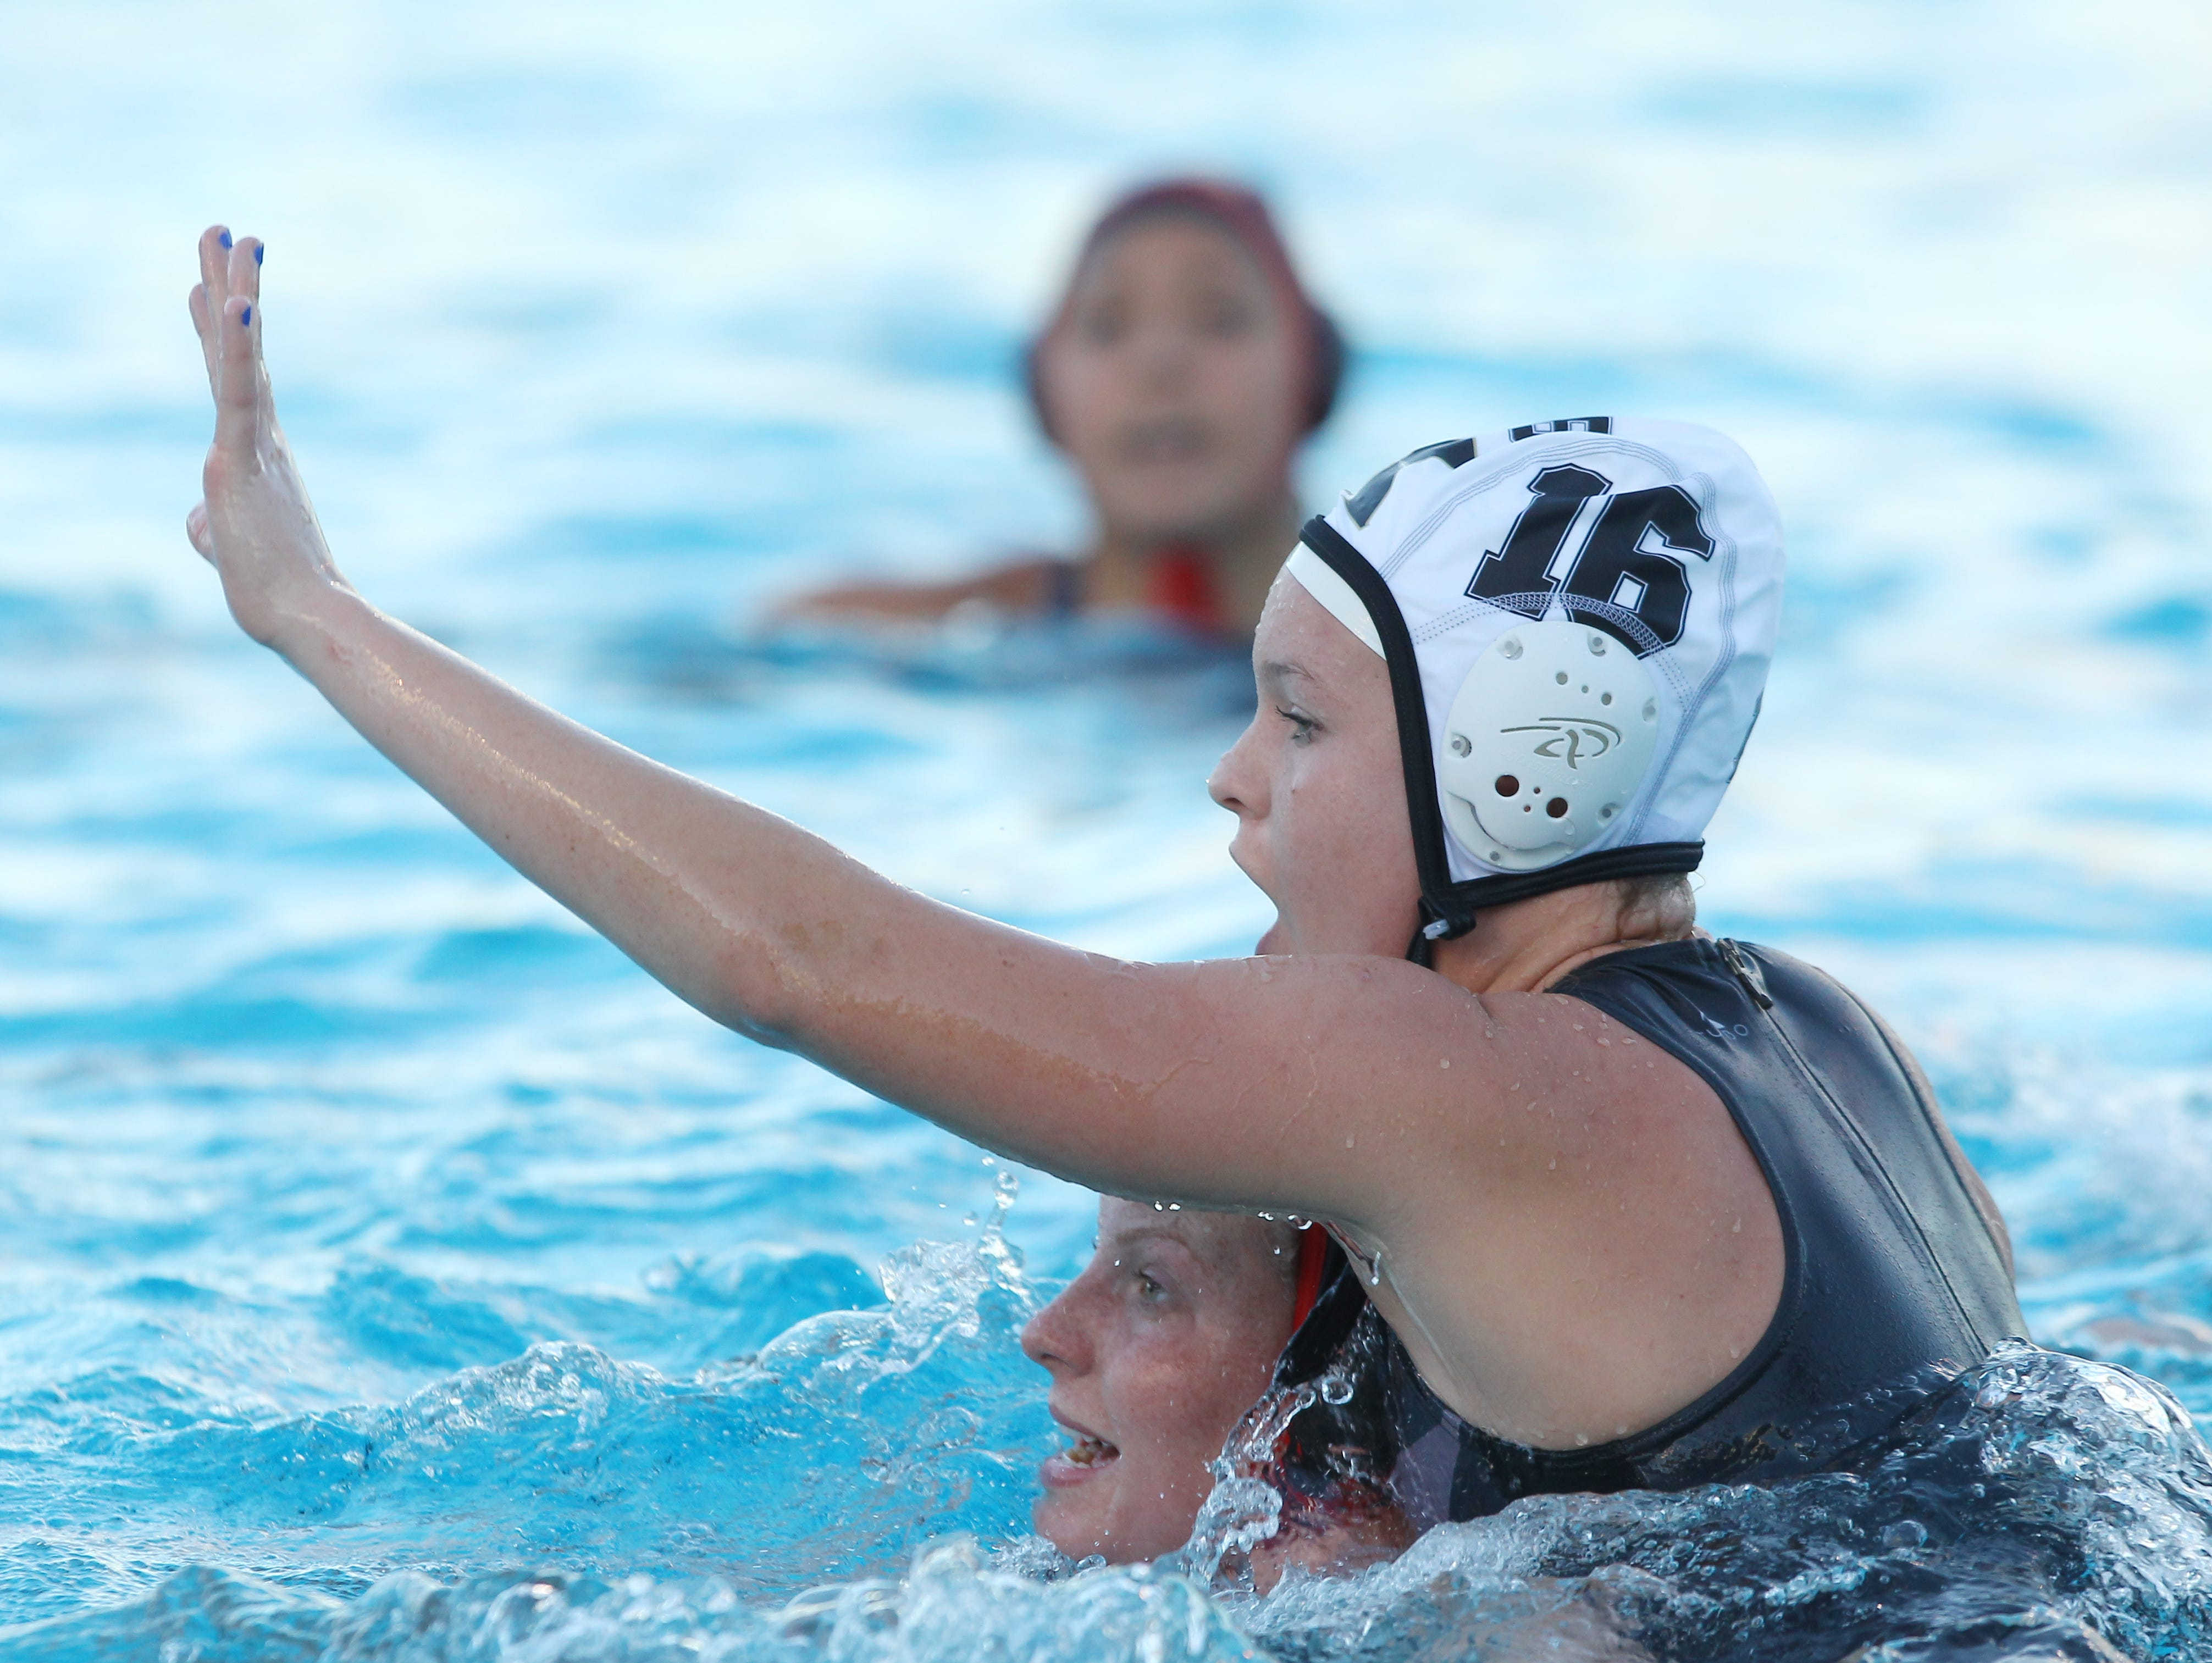 Palm Desert High School player, at bottom, is defended by Xavier Prep's #16 during their match at Palm Desert High School.